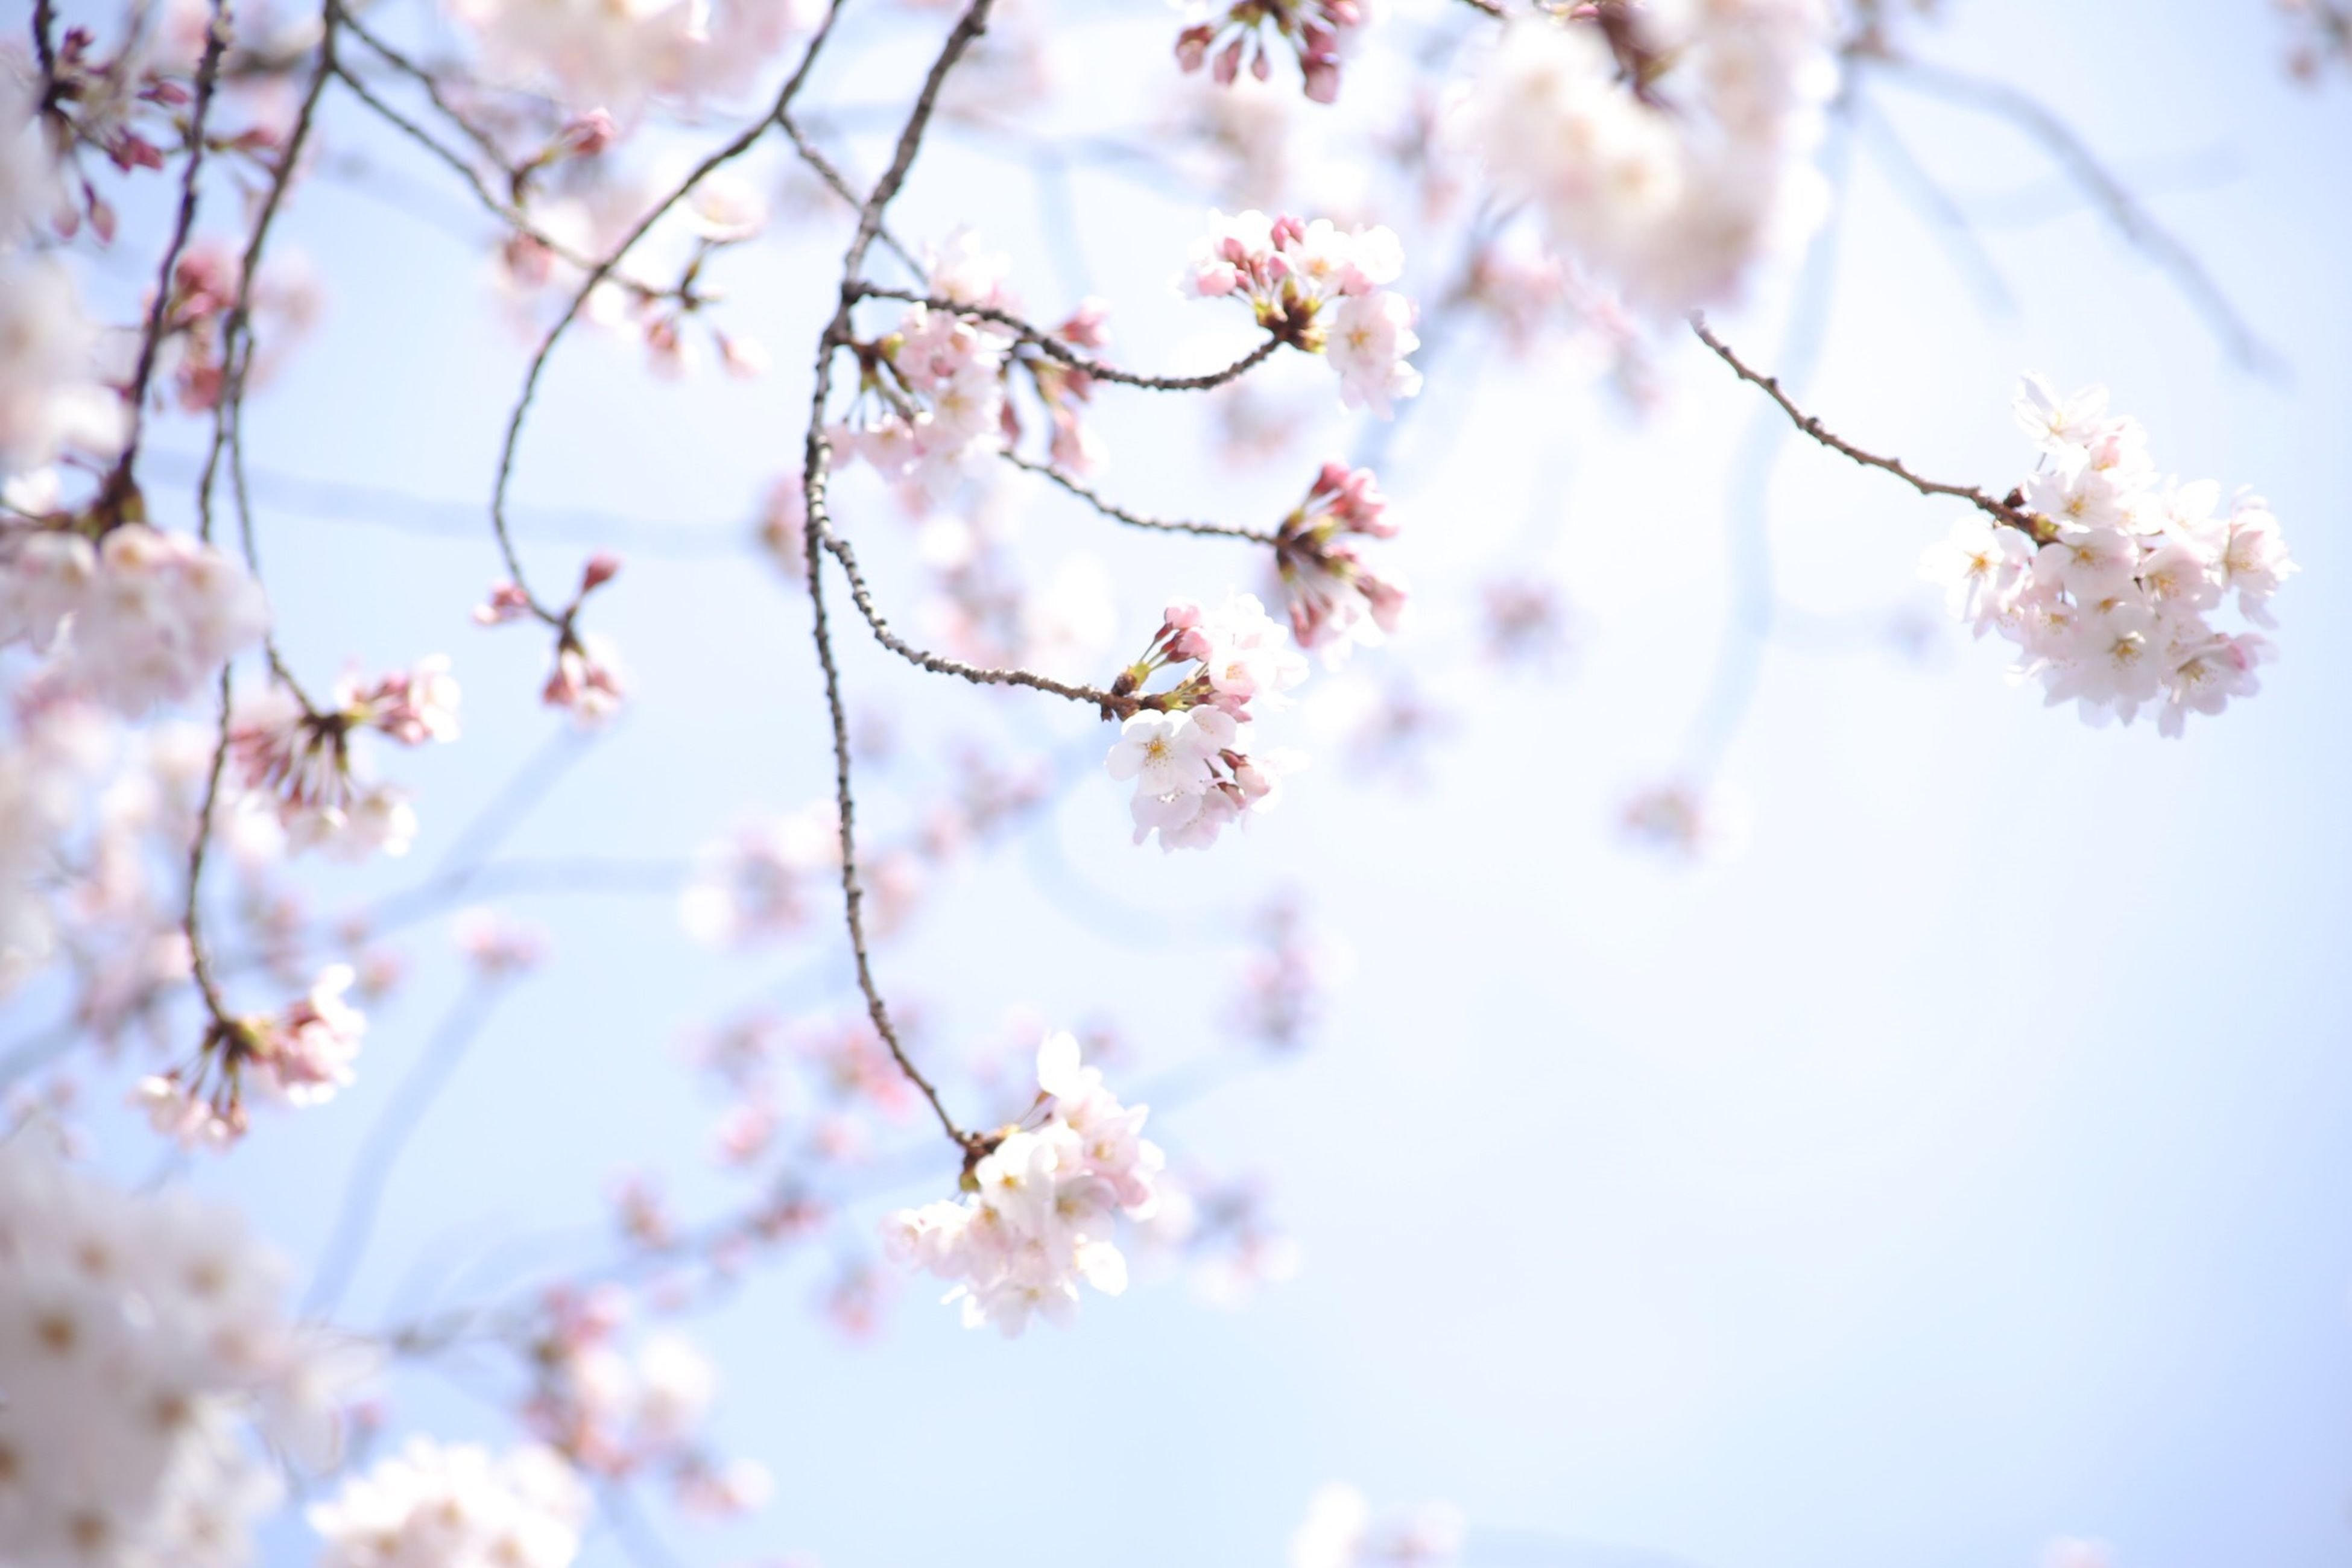 flower, freshness, branch, tree, growth, beauty in nature, fragility, cherry blossom, blossom, nature, cherry tree, focus on foreground, springtime, twig, pink color, low angle view, in bloom, fruit tree, close-up, blooming